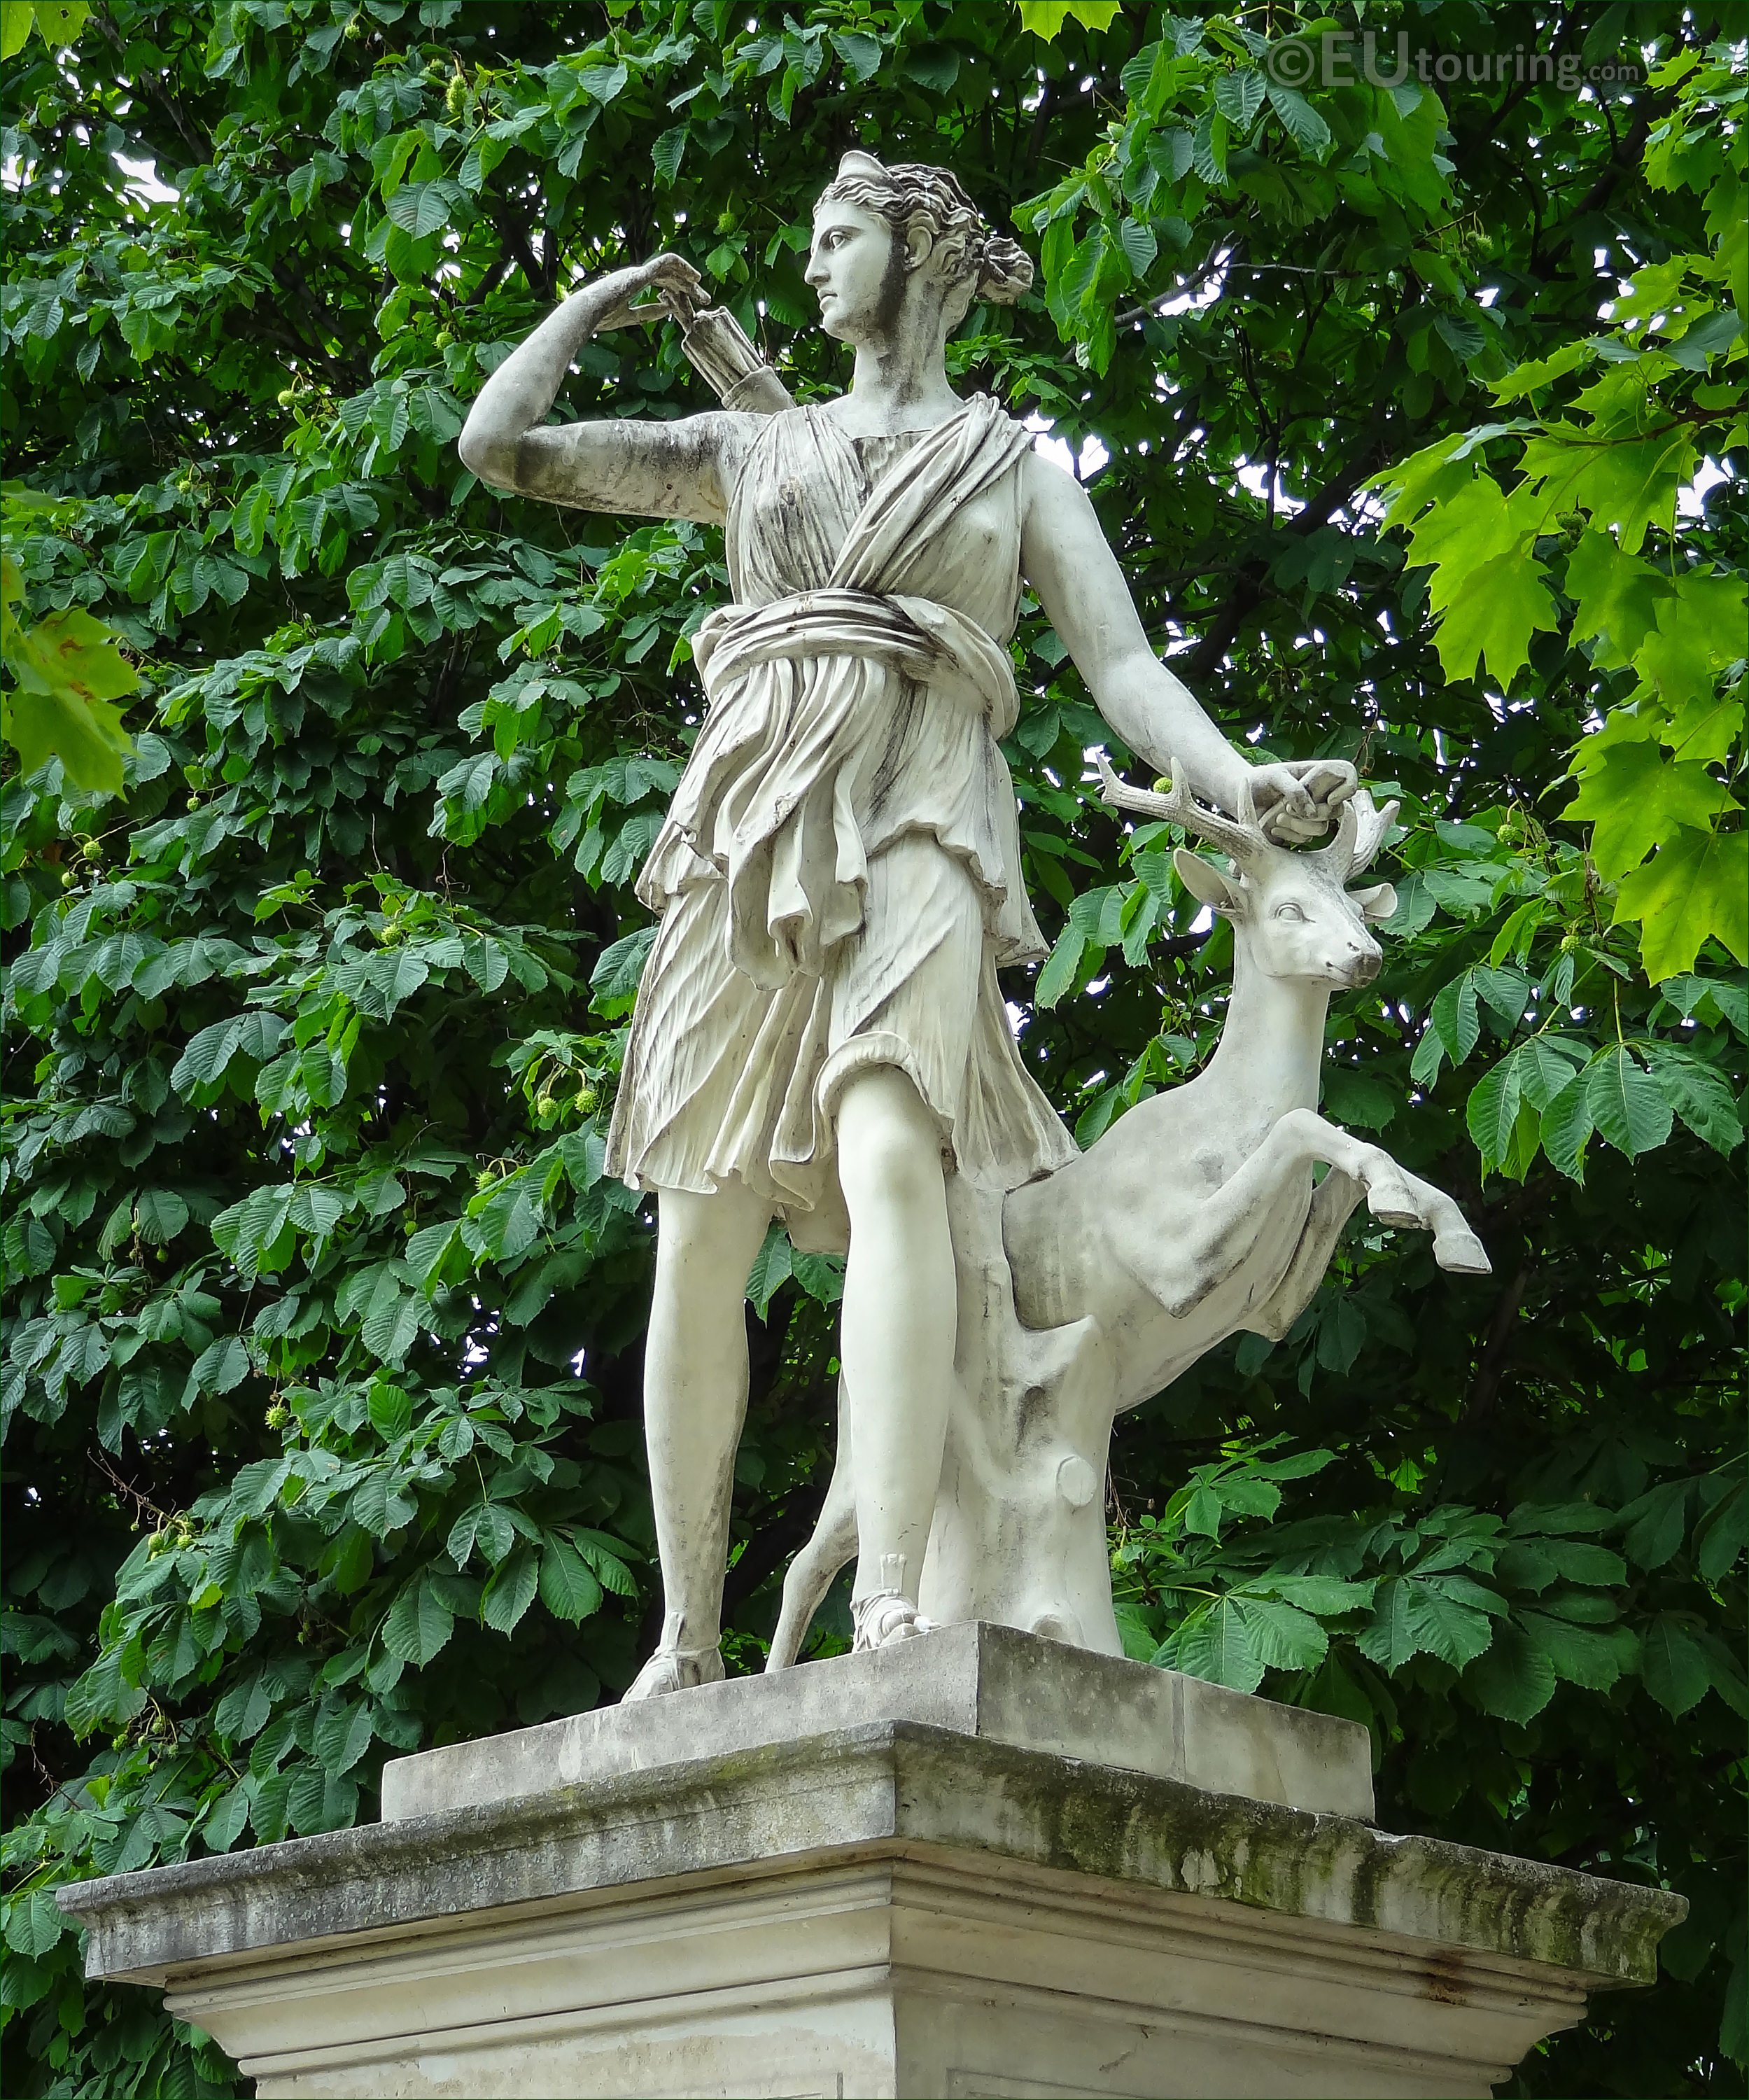 Photos of diane a la biche statue in jardin des tuileries - Sculpture jardin des tuileries ...